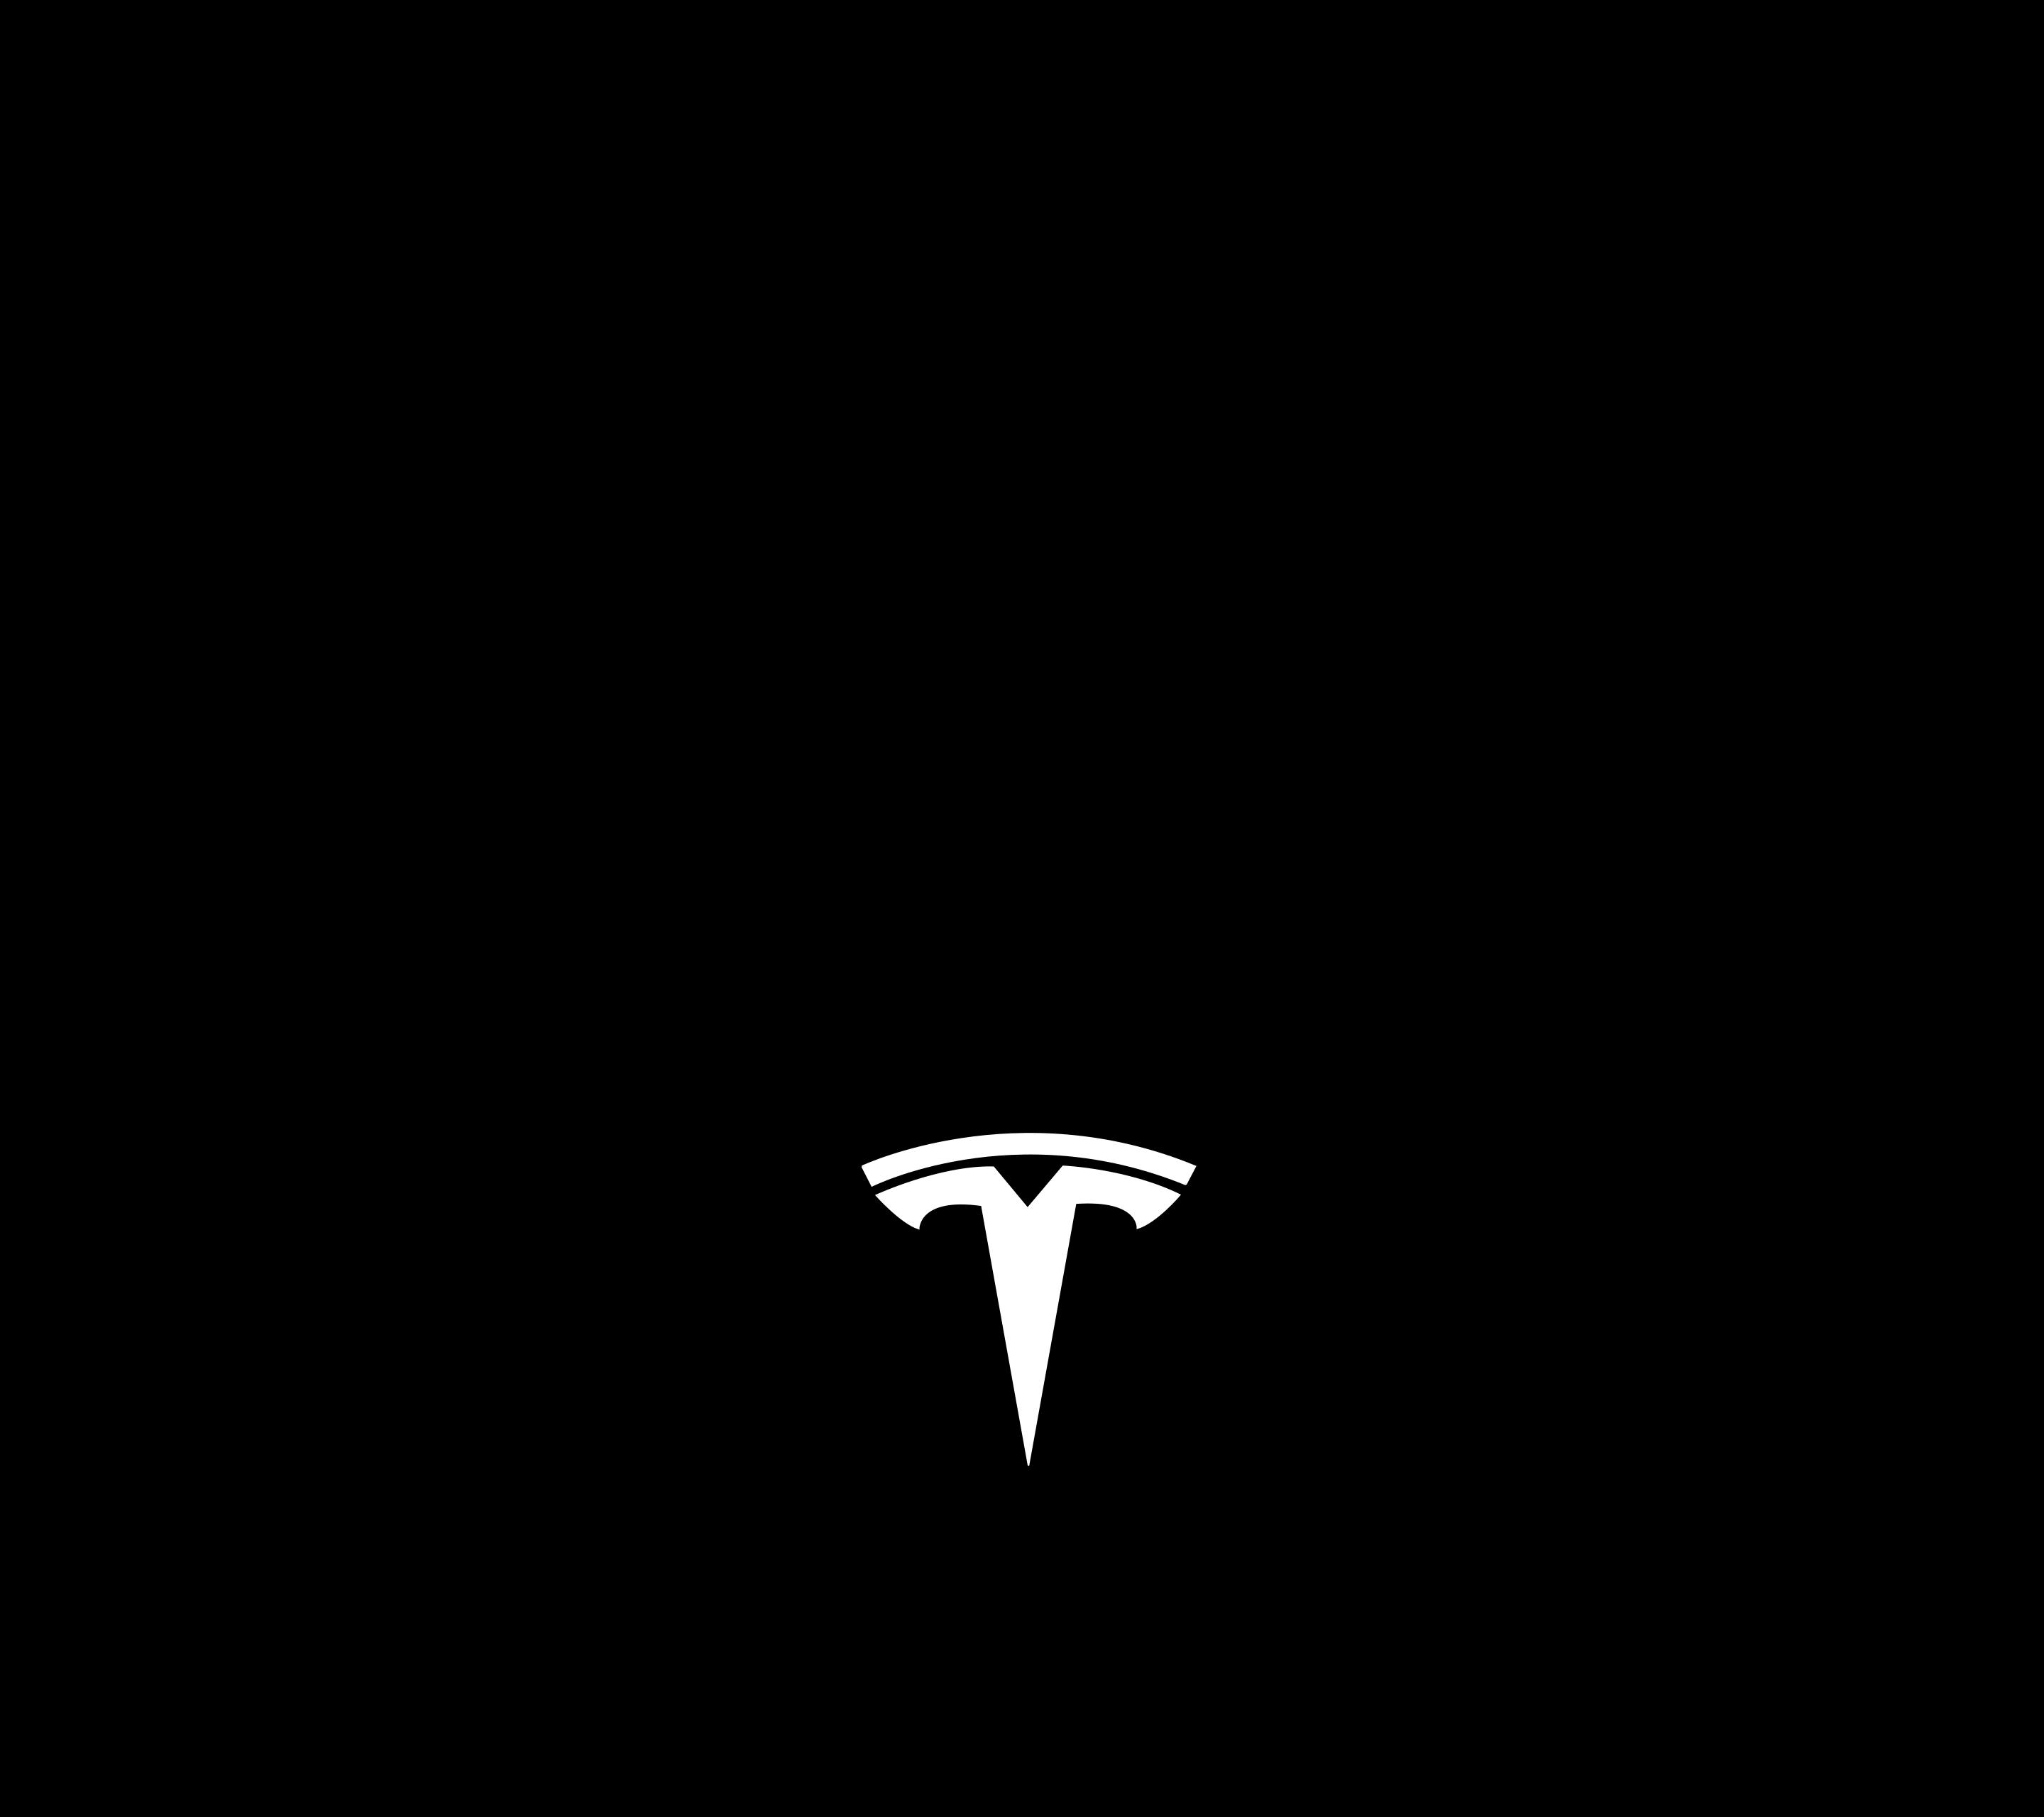 2880x2560 I traced a vector of the tesla logo so I could make a full ...